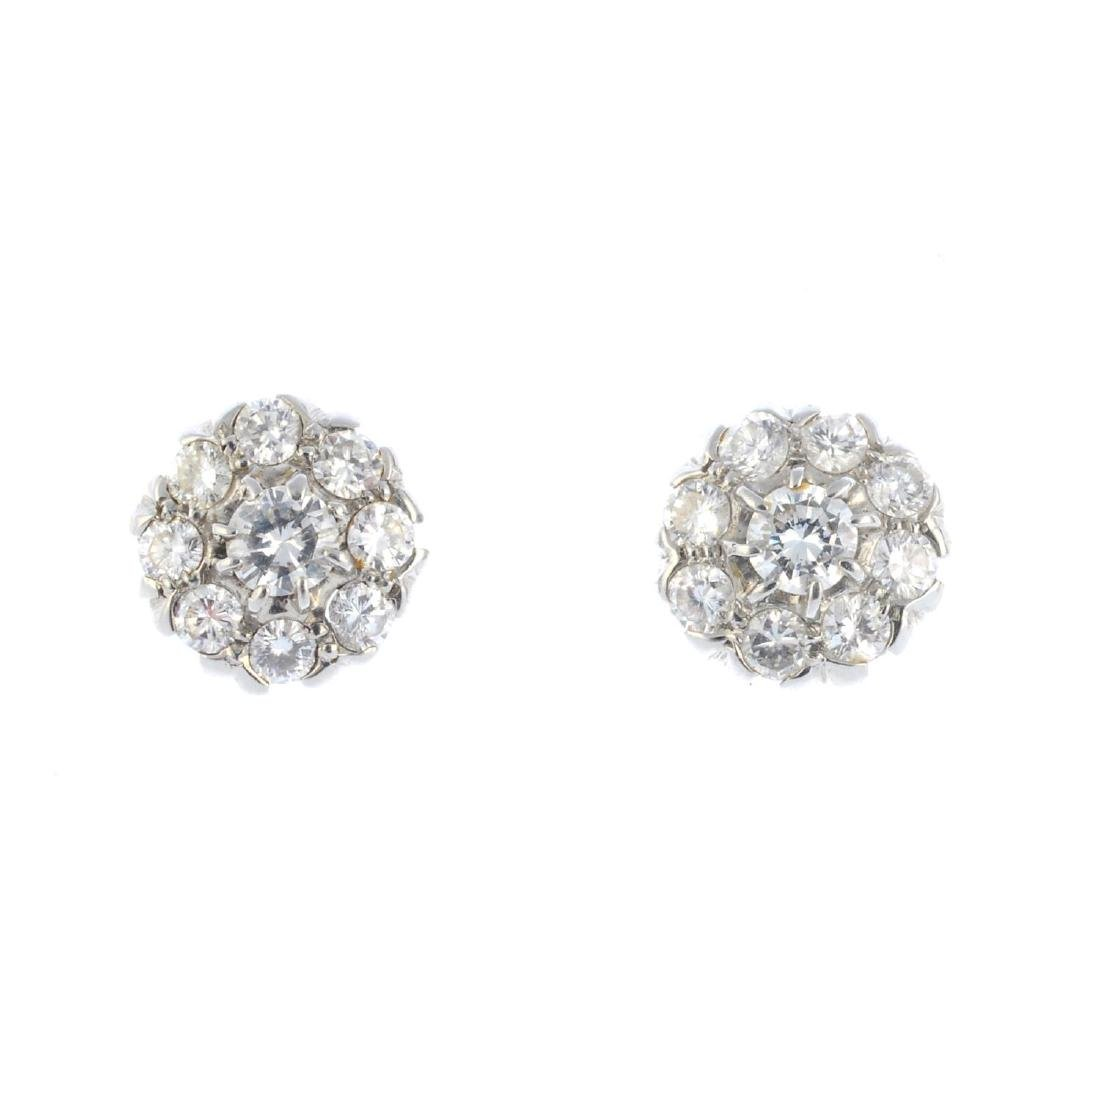 A pair of diamond cluster earrings. Each designed as